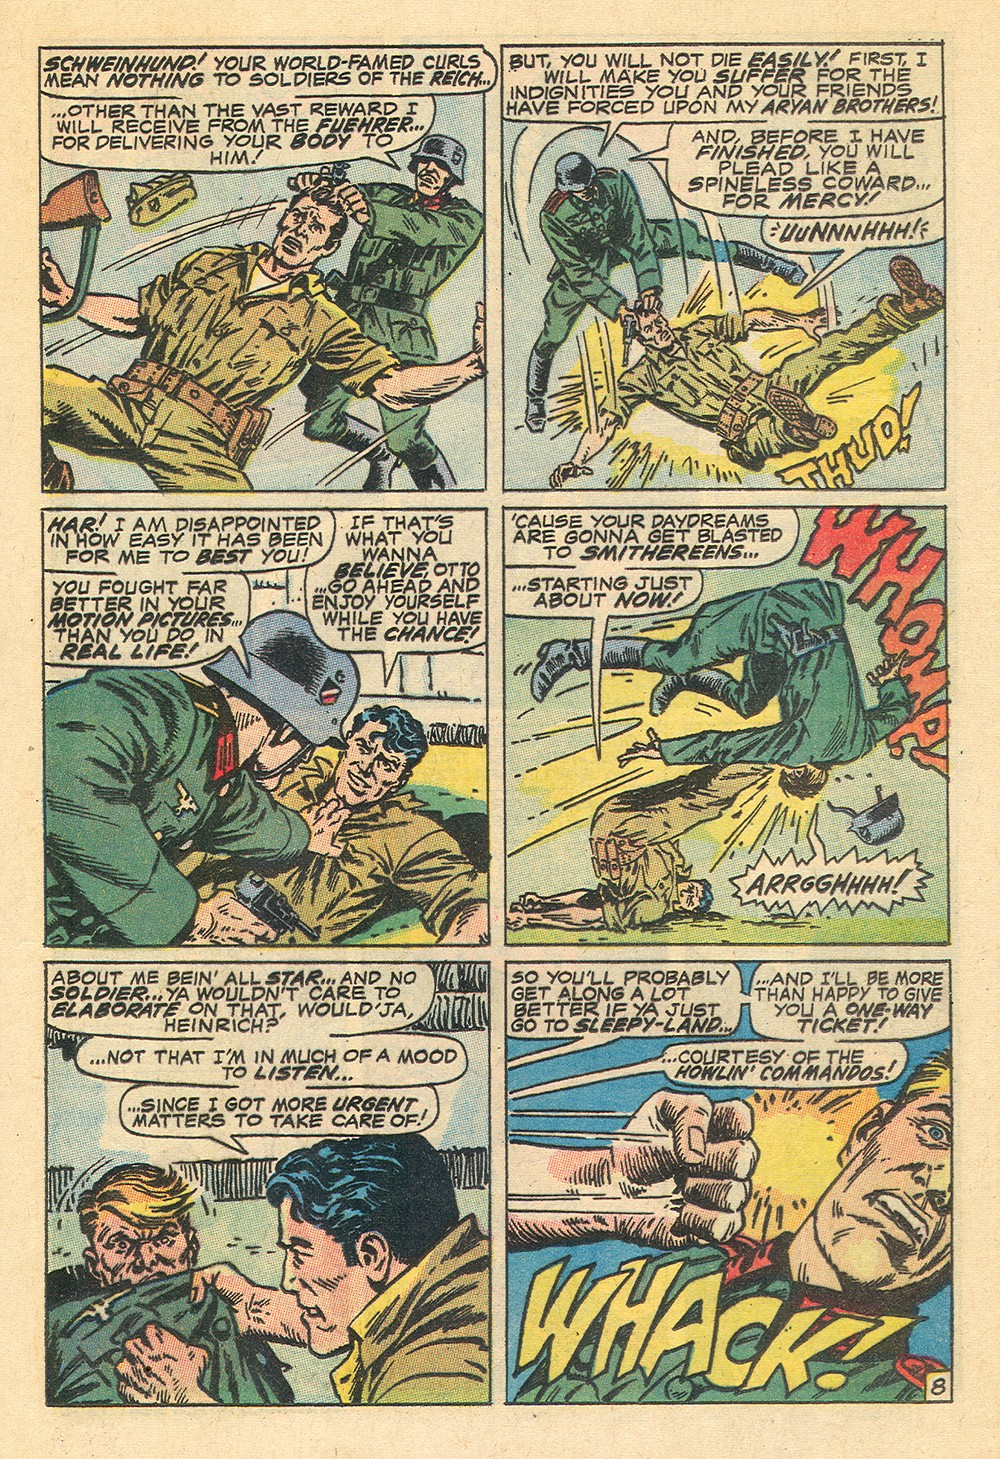 Read online Sgt. Fury comic -  Issue #71 - 13